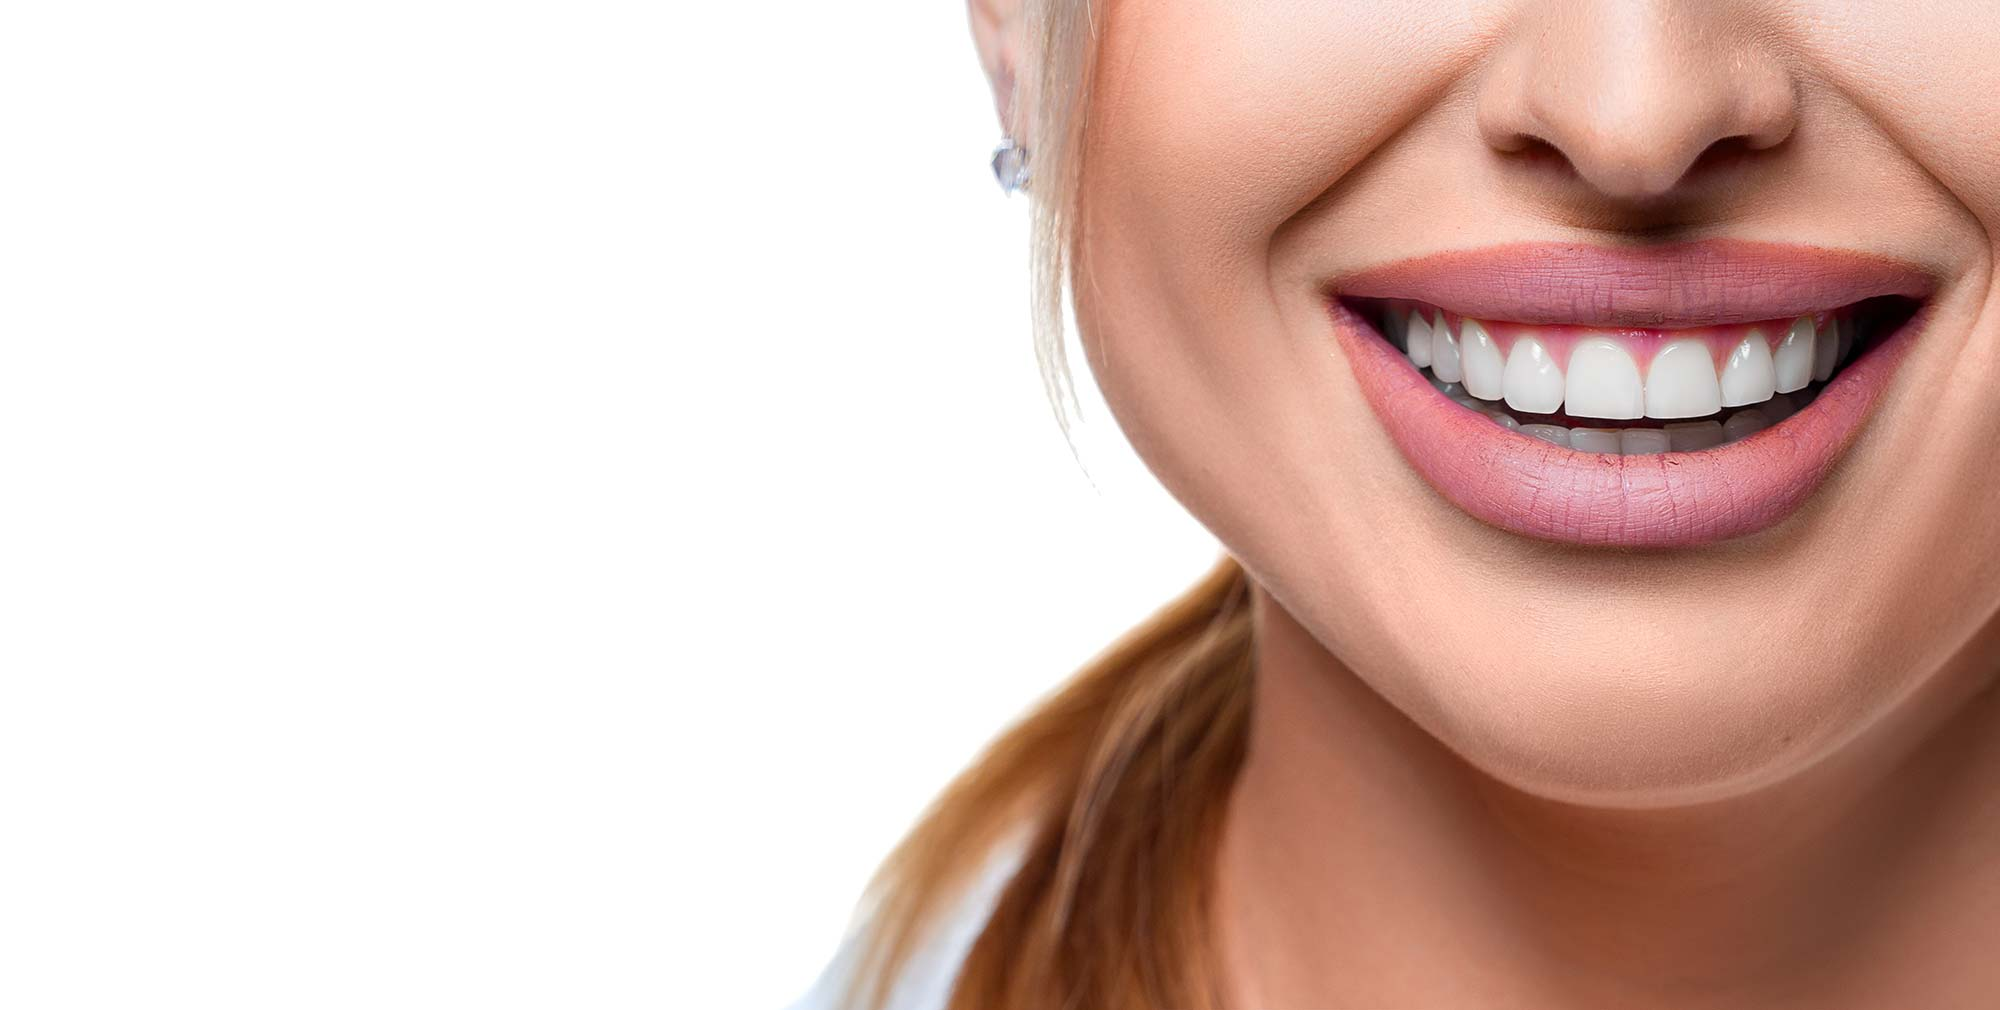 7 Daily Habits That Boost Dental Health